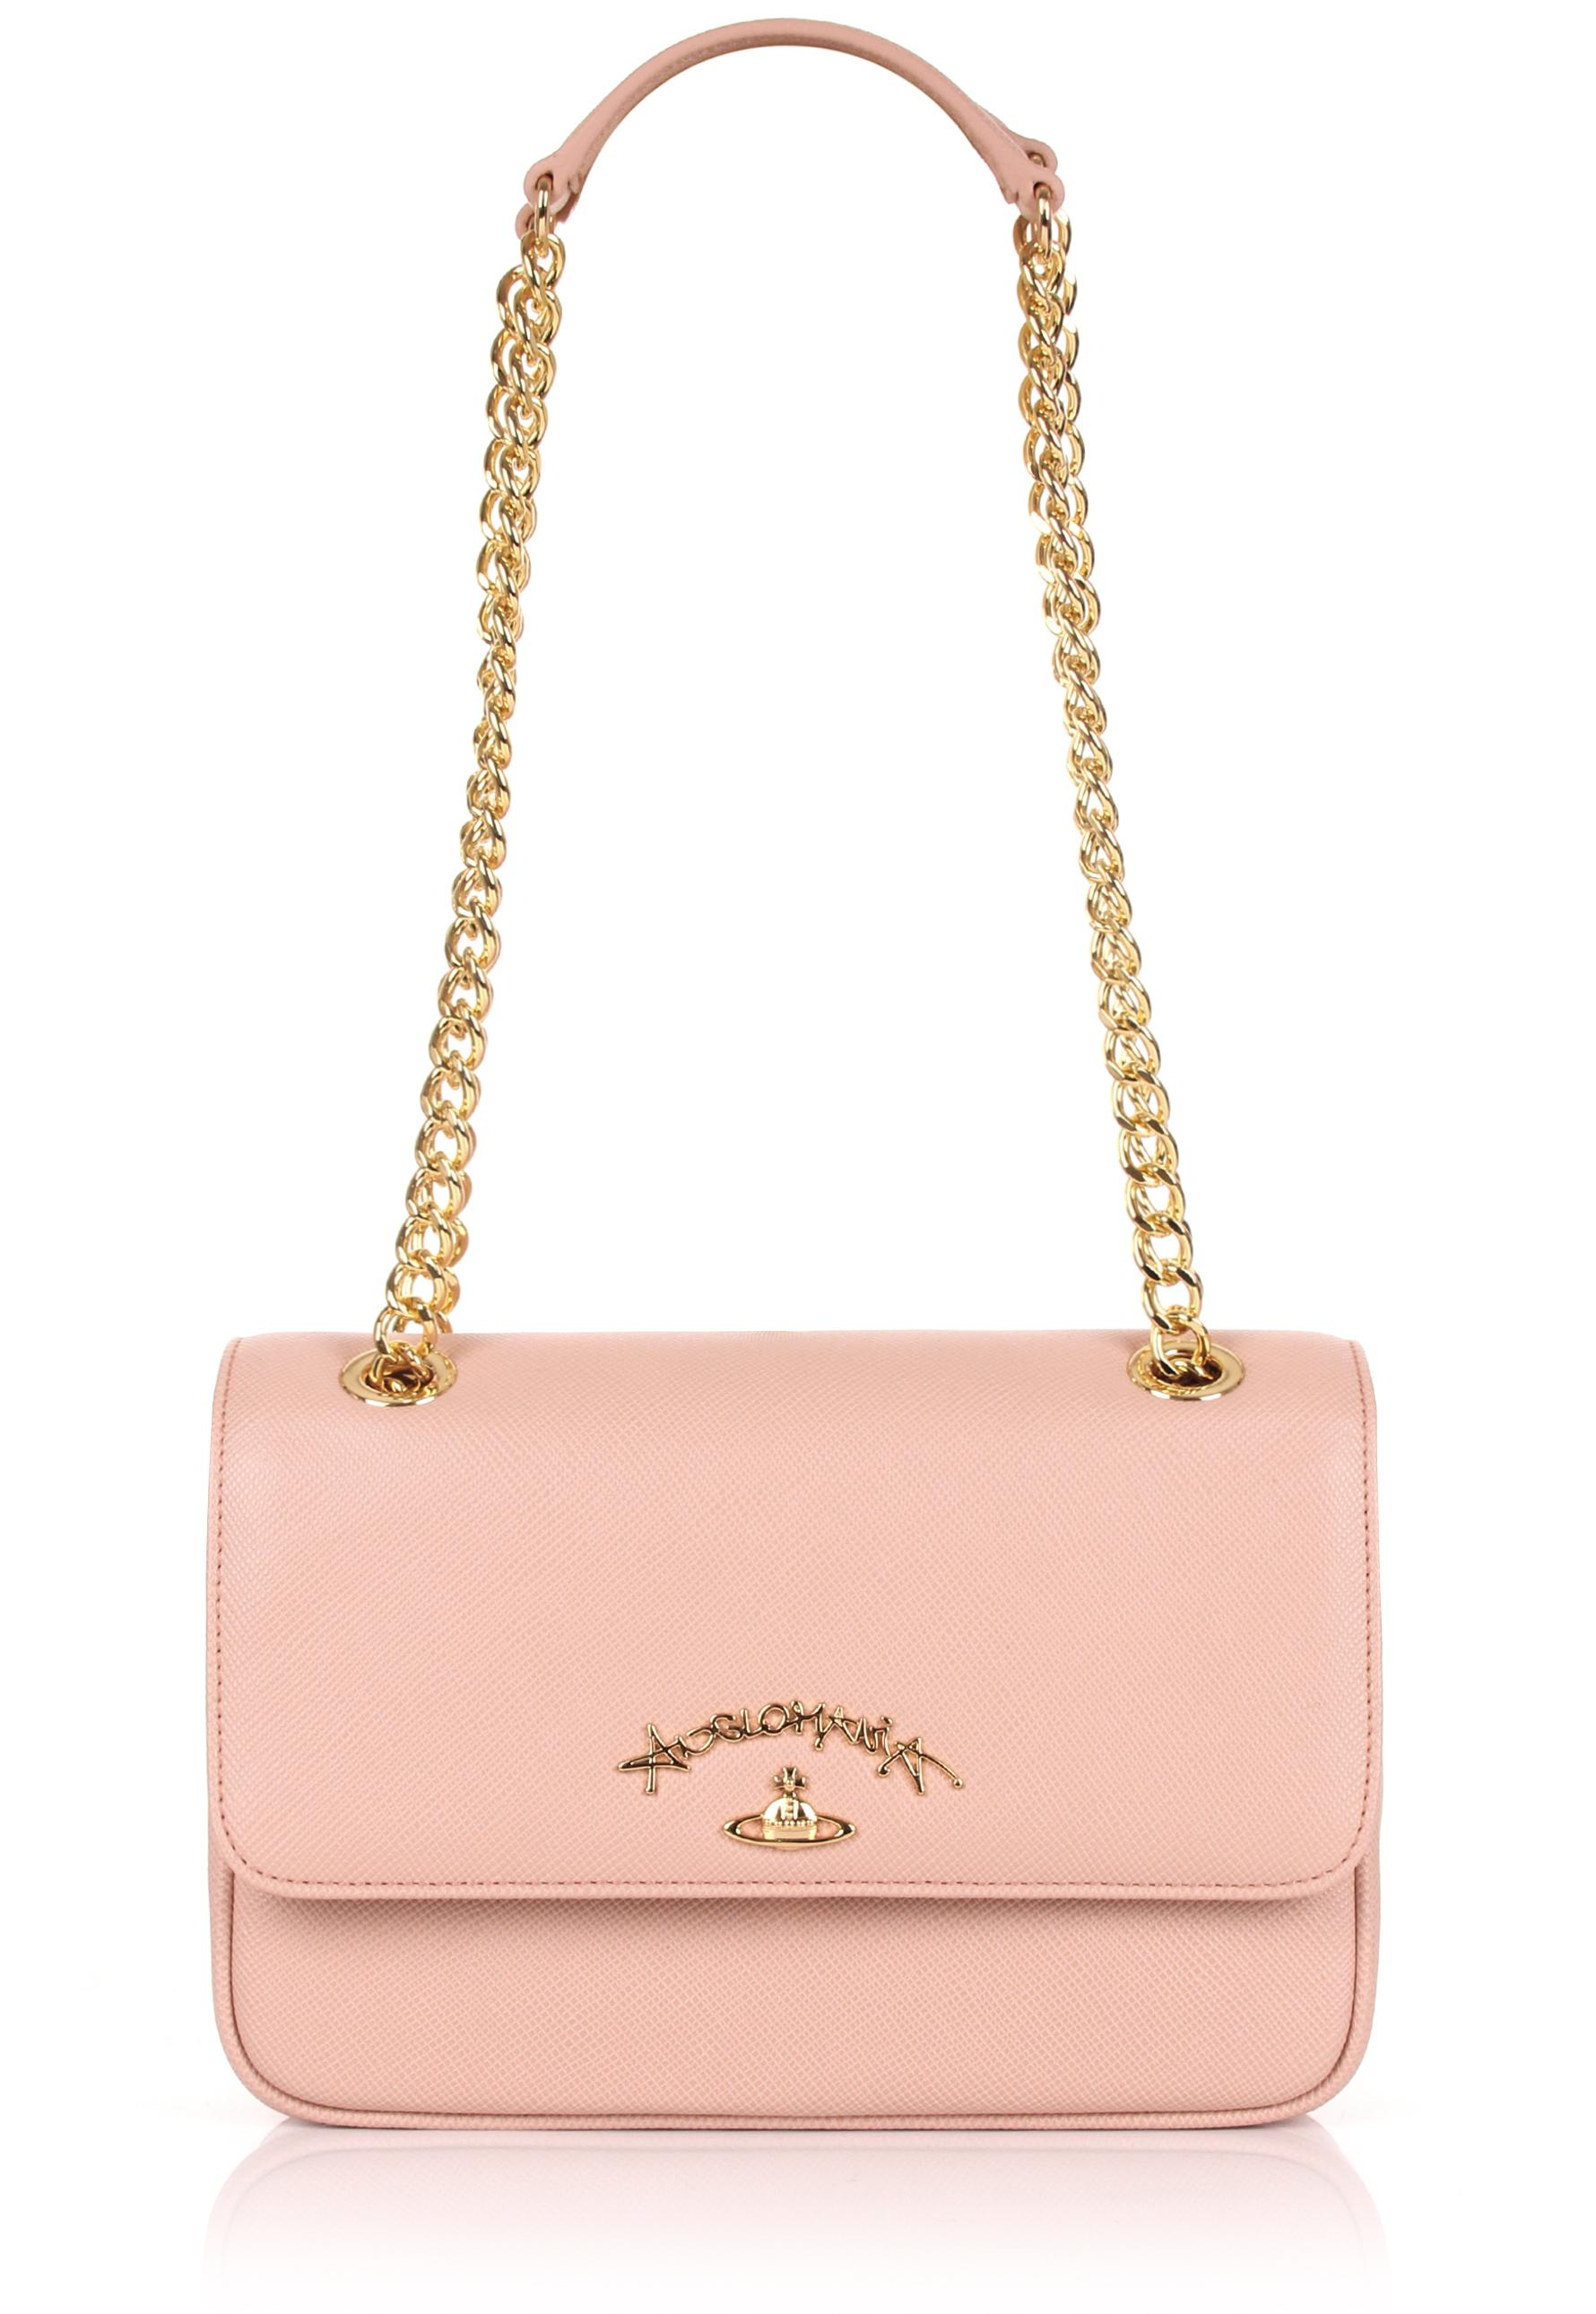 64f4980f1fe5 Lyst - Vivienne Westwood Divina 7065 Evening Bag With Flap Pink in Pink